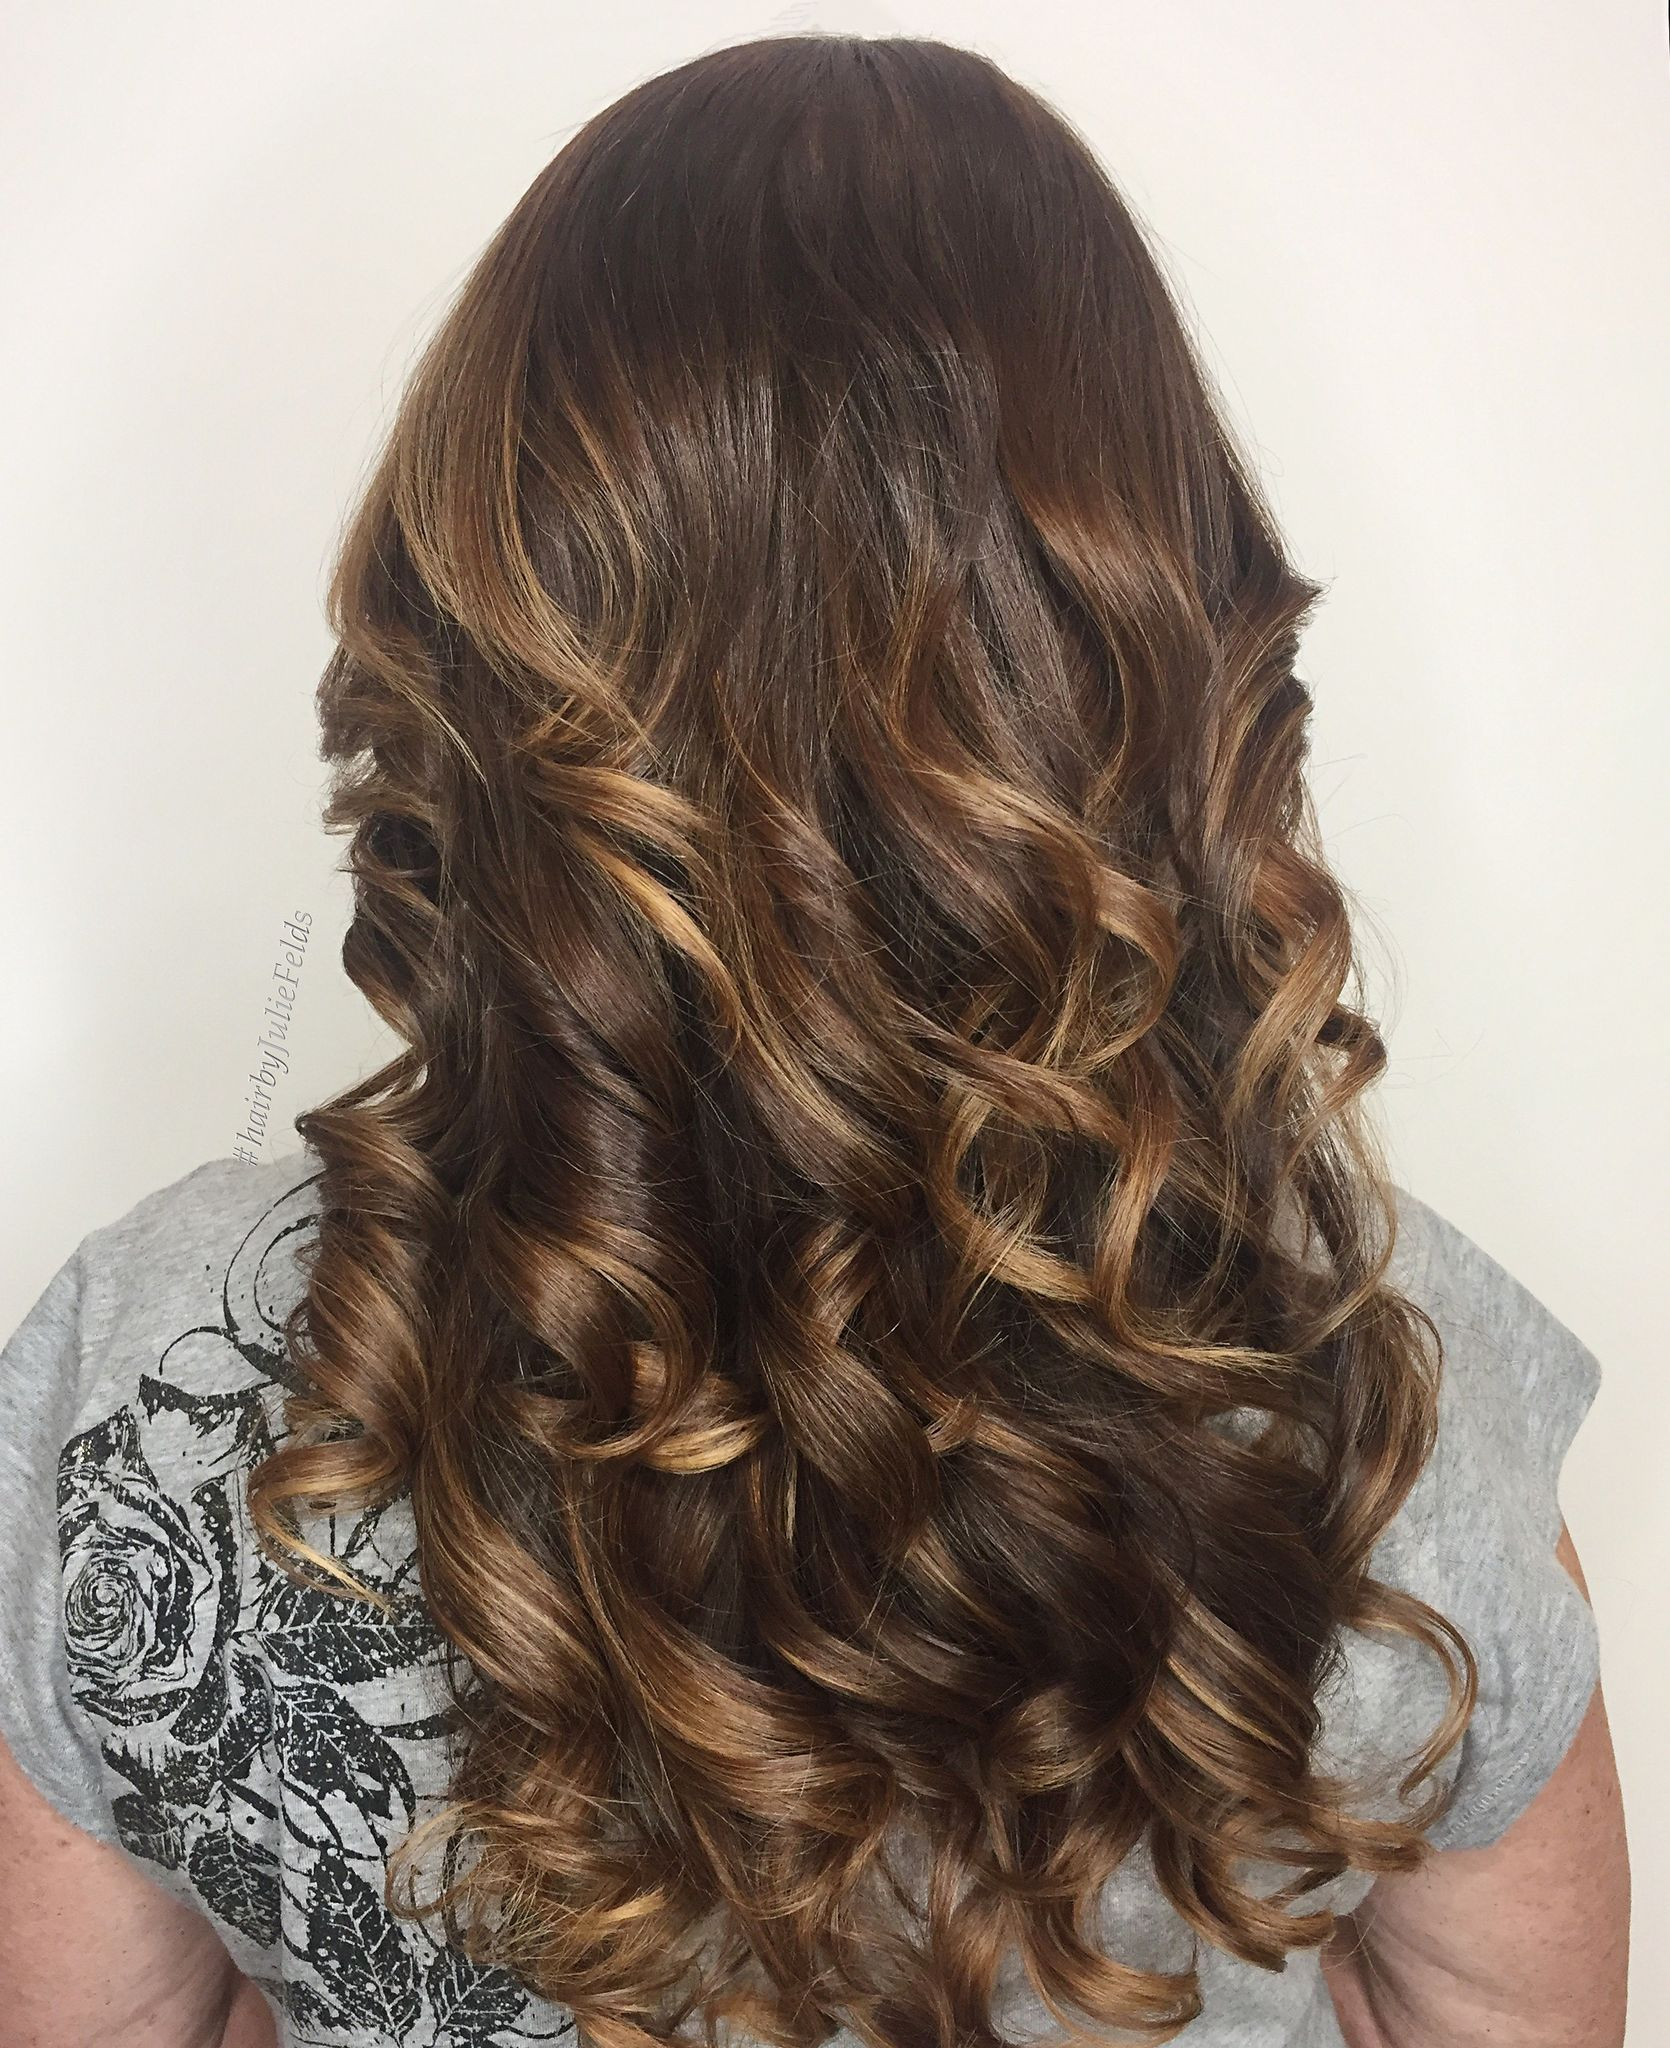 A Beautiful Haircut And Blowout For Patricia Done By Our